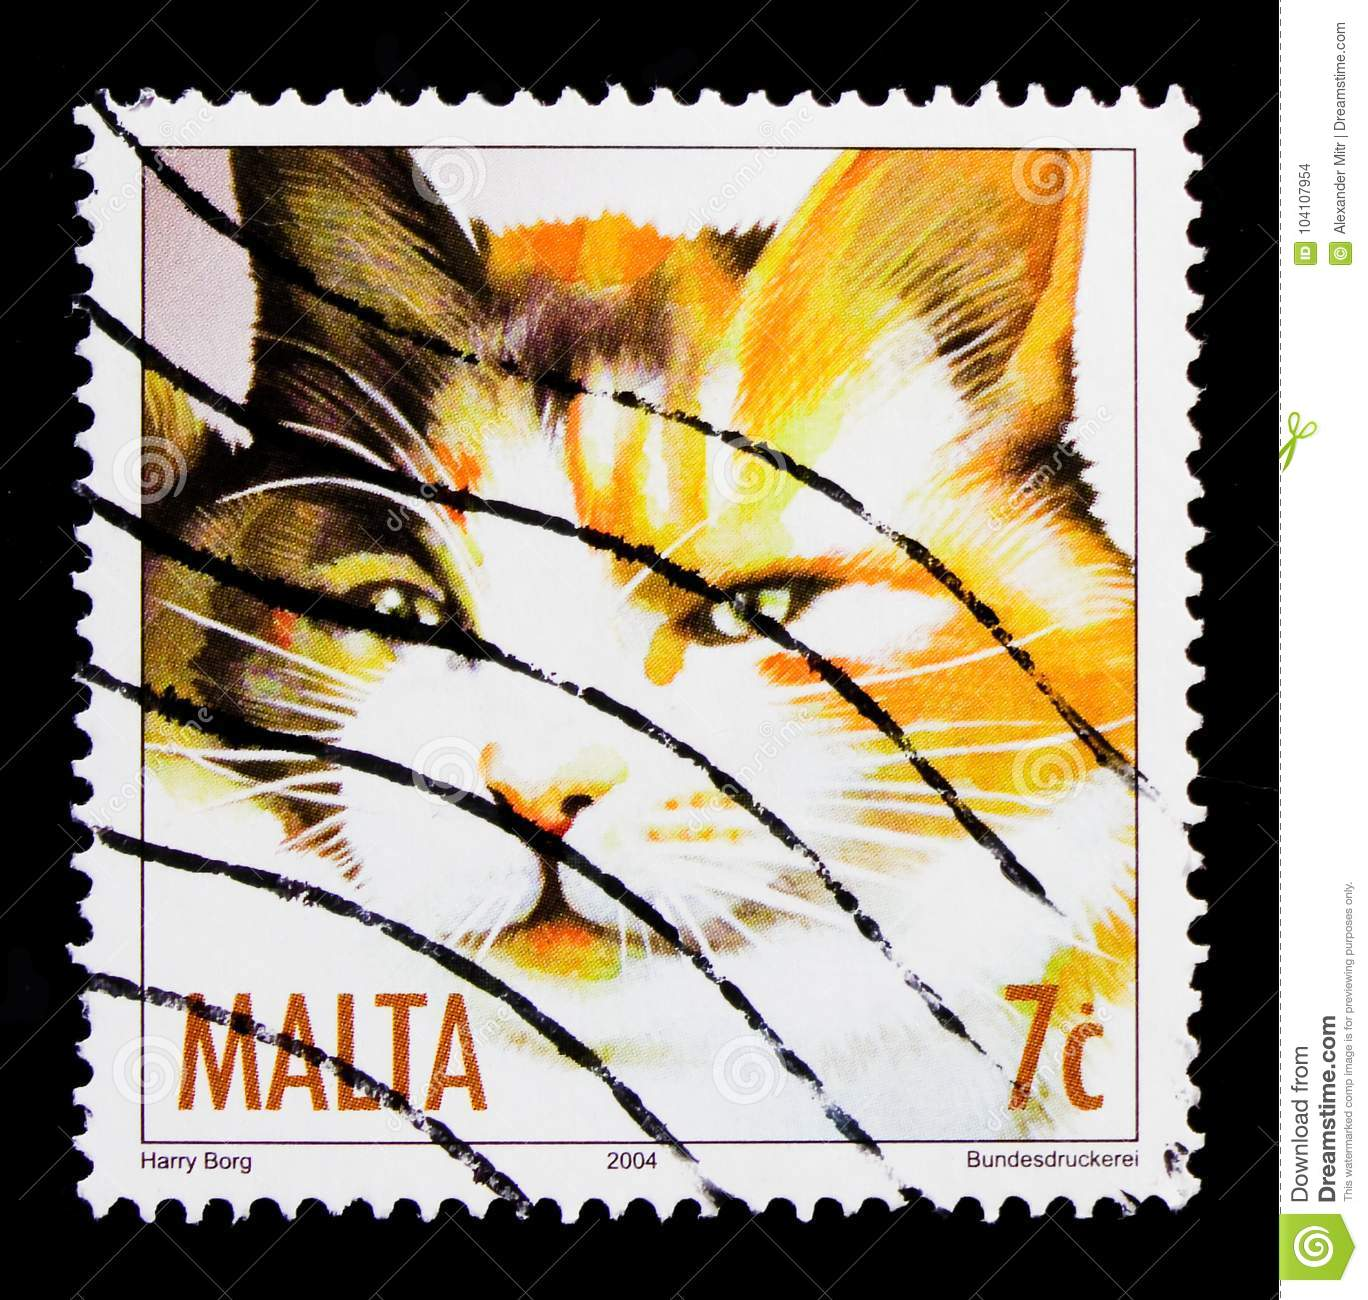 MOSCOW, RUSSIA - OCTOBER 3, 2017: A stamp printed in Malta shows cat Tortoiseshell (Felis silvestris catus), Cats serie, circa